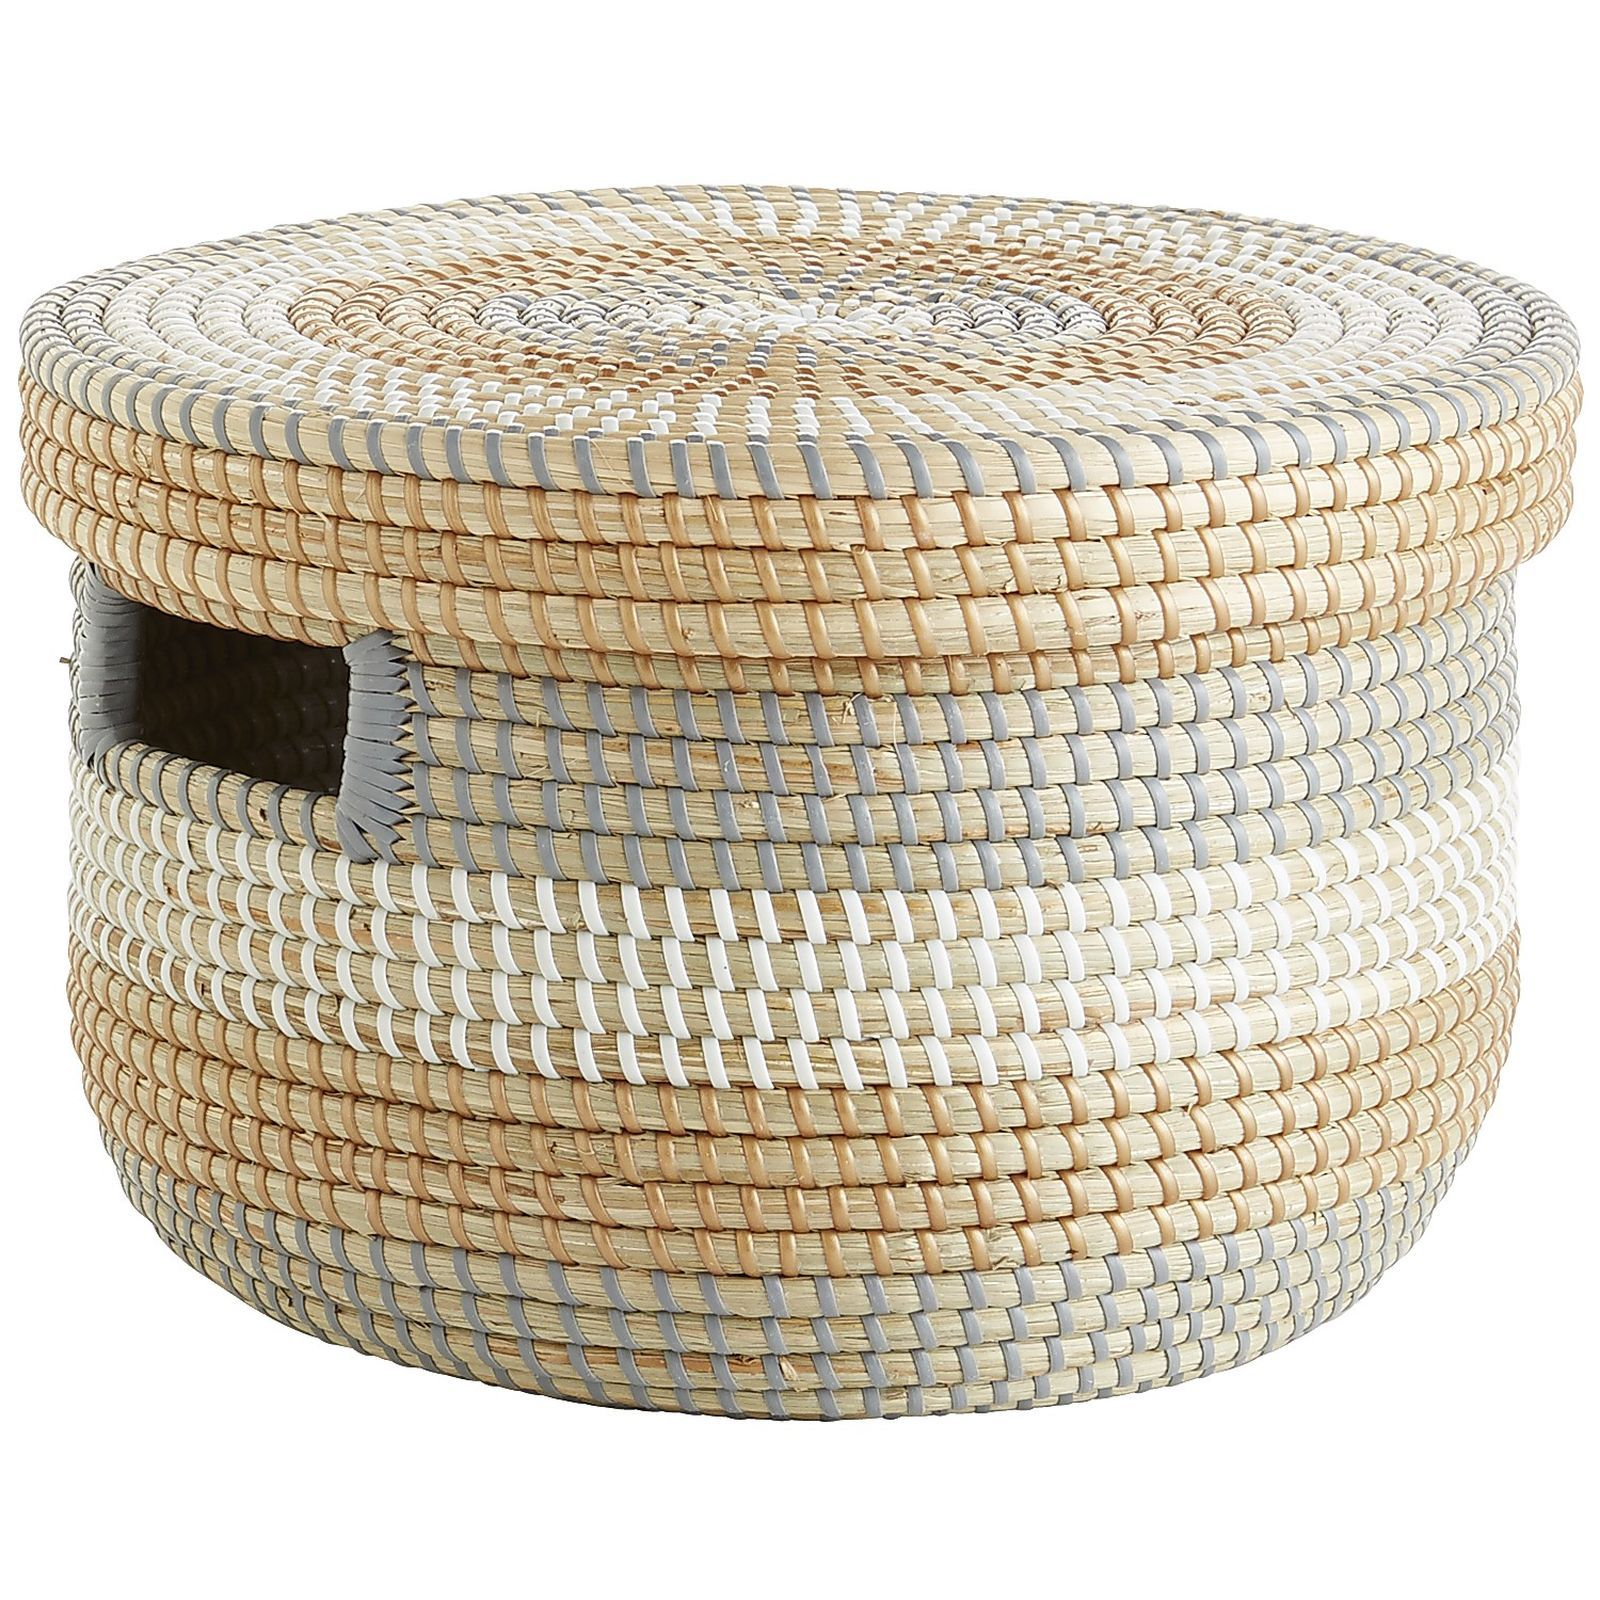 Isla Natural Seagrass Lidded Basket | Traditional baskets ...